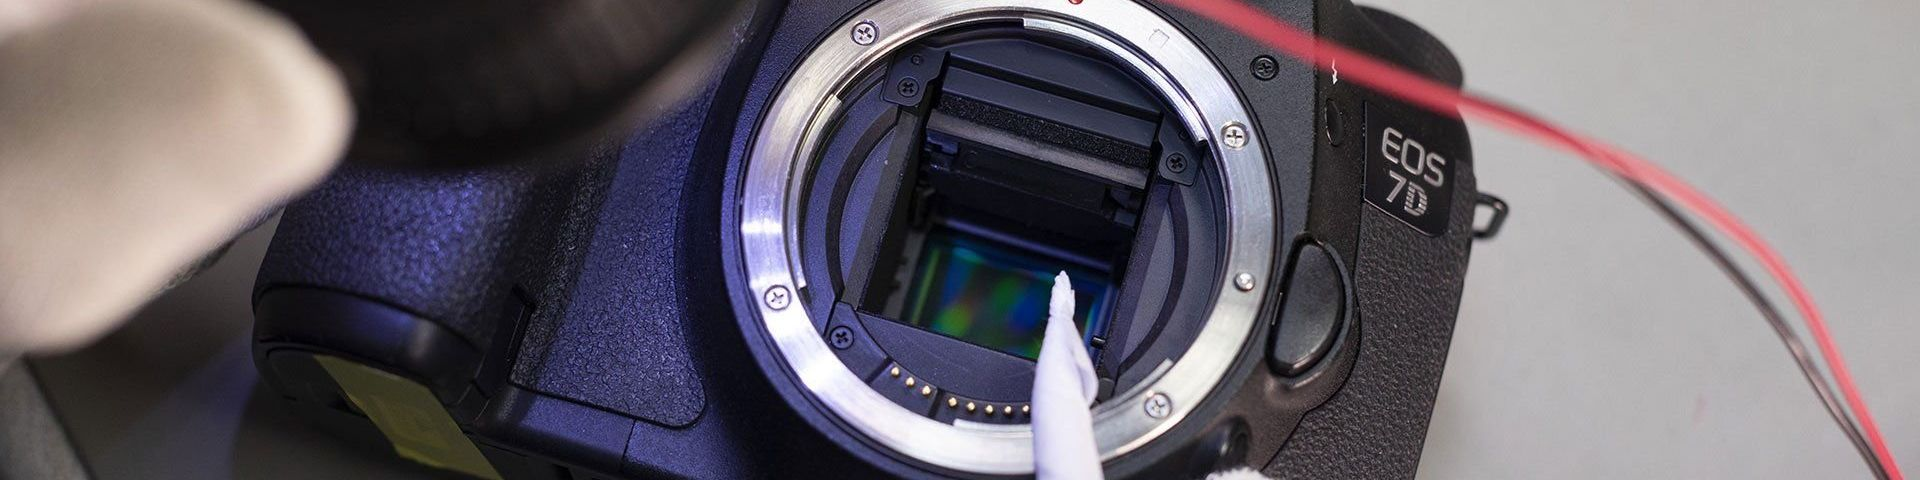 A close-up of a Canon EOS 7D body showing the sensor inside